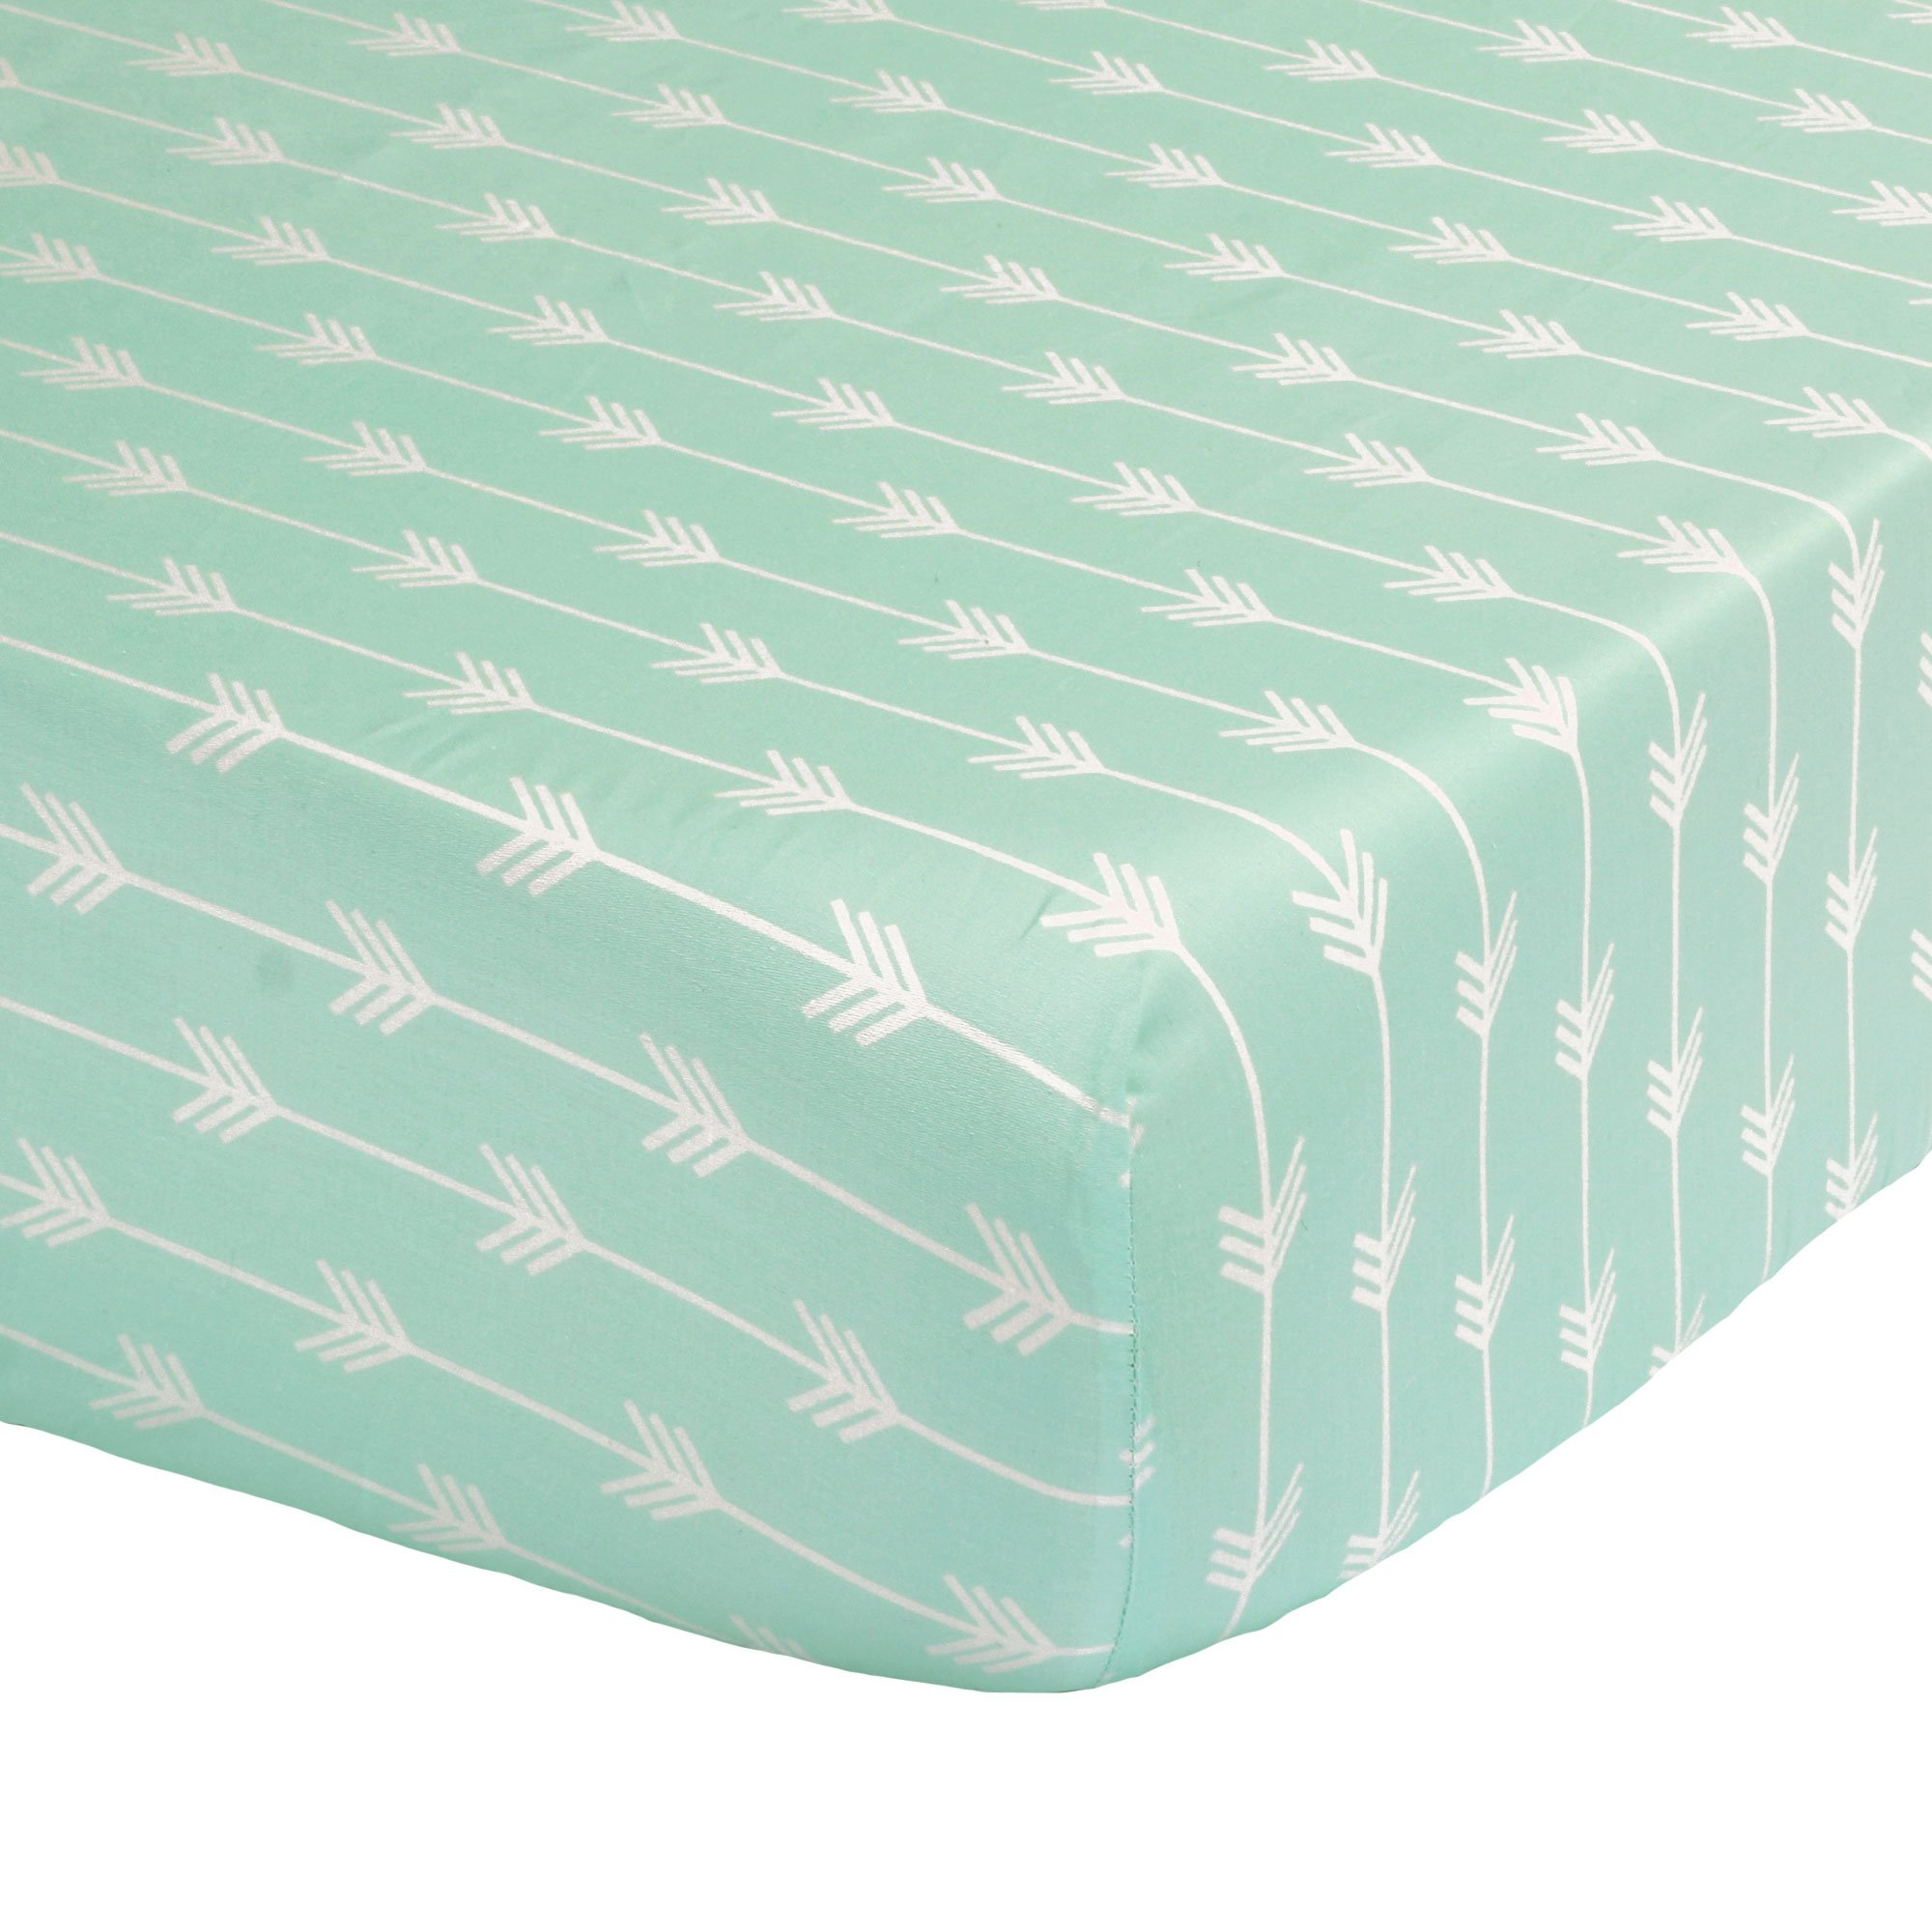 Mint Green Arrow Print Fitted Crib Sheet - 100% Cotton Baby Girl and Boy Tribal Theme Geometric Designs Nursery and Toddler Bedding